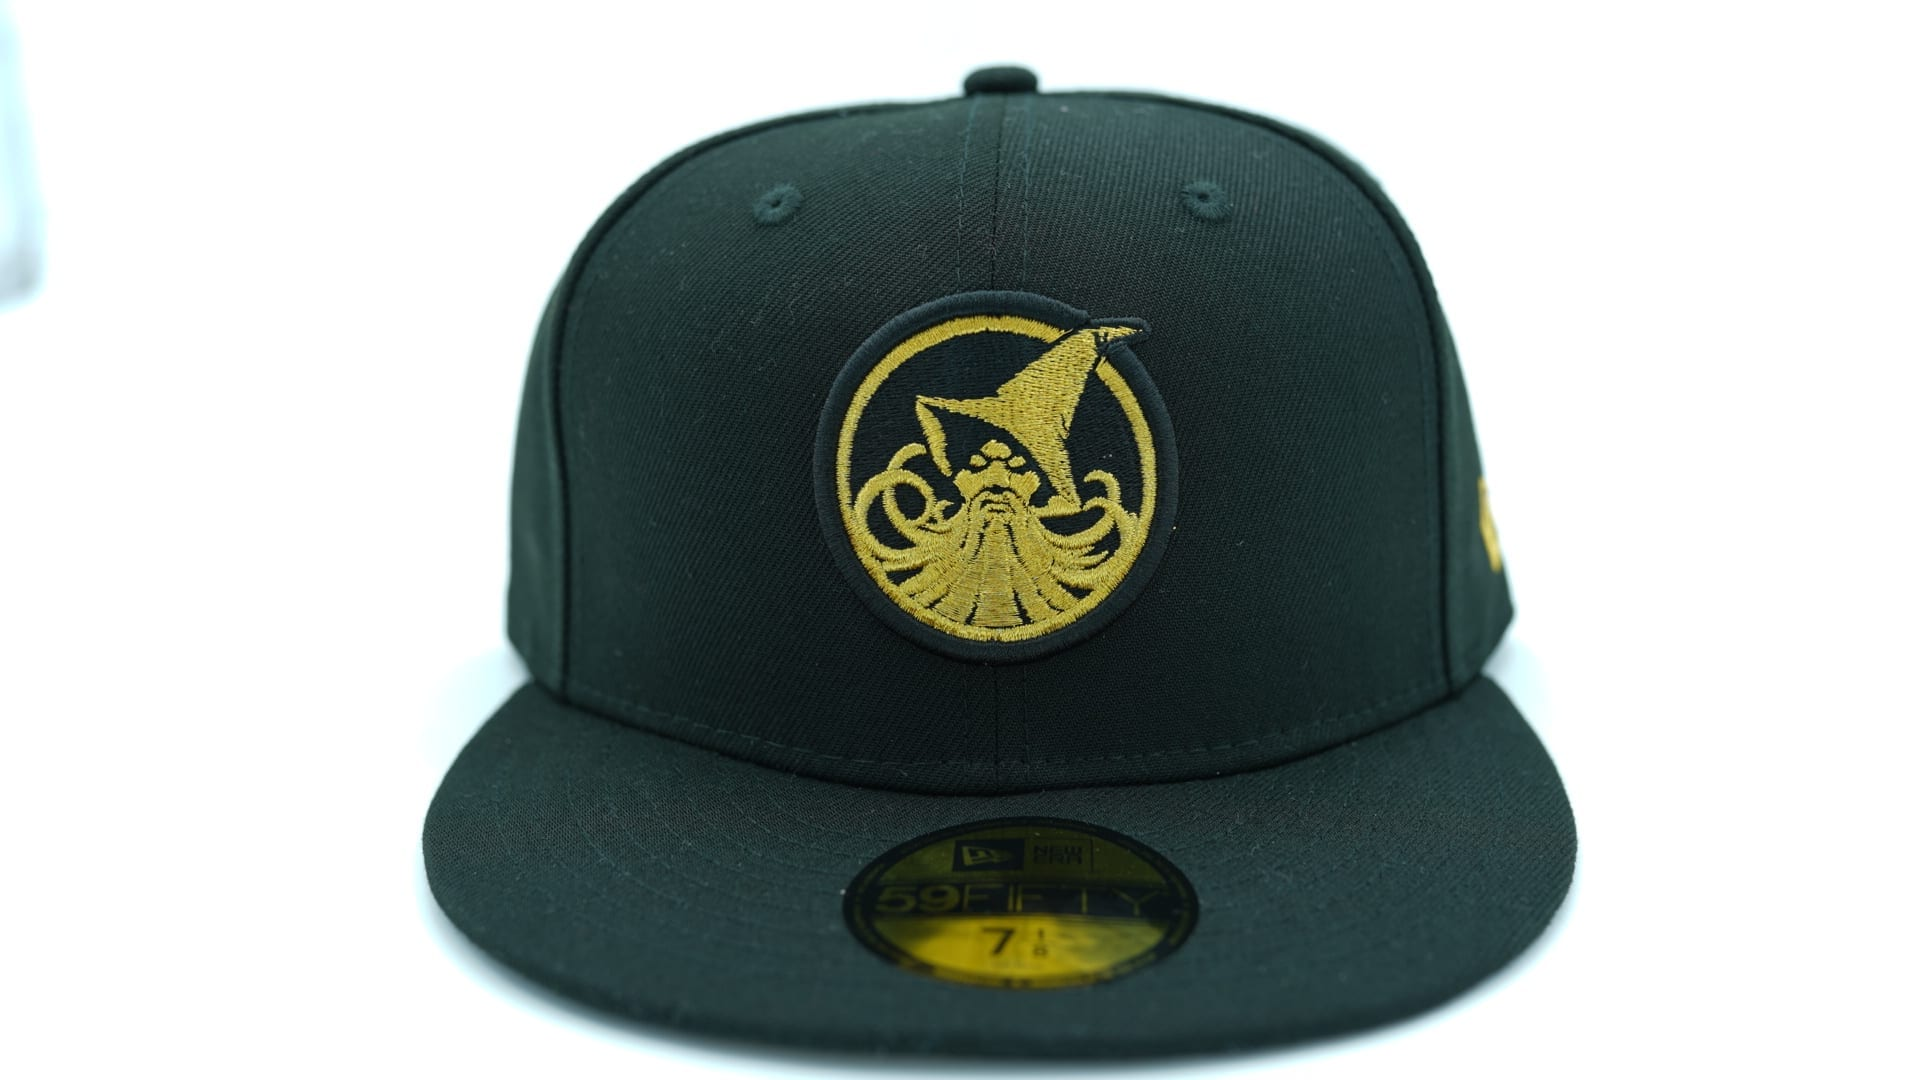 http://www.strictlyfitteds.com/blog/wp-content/uploads/2009/12/starwars-fitted-baseball-cap-newera_2.jpg